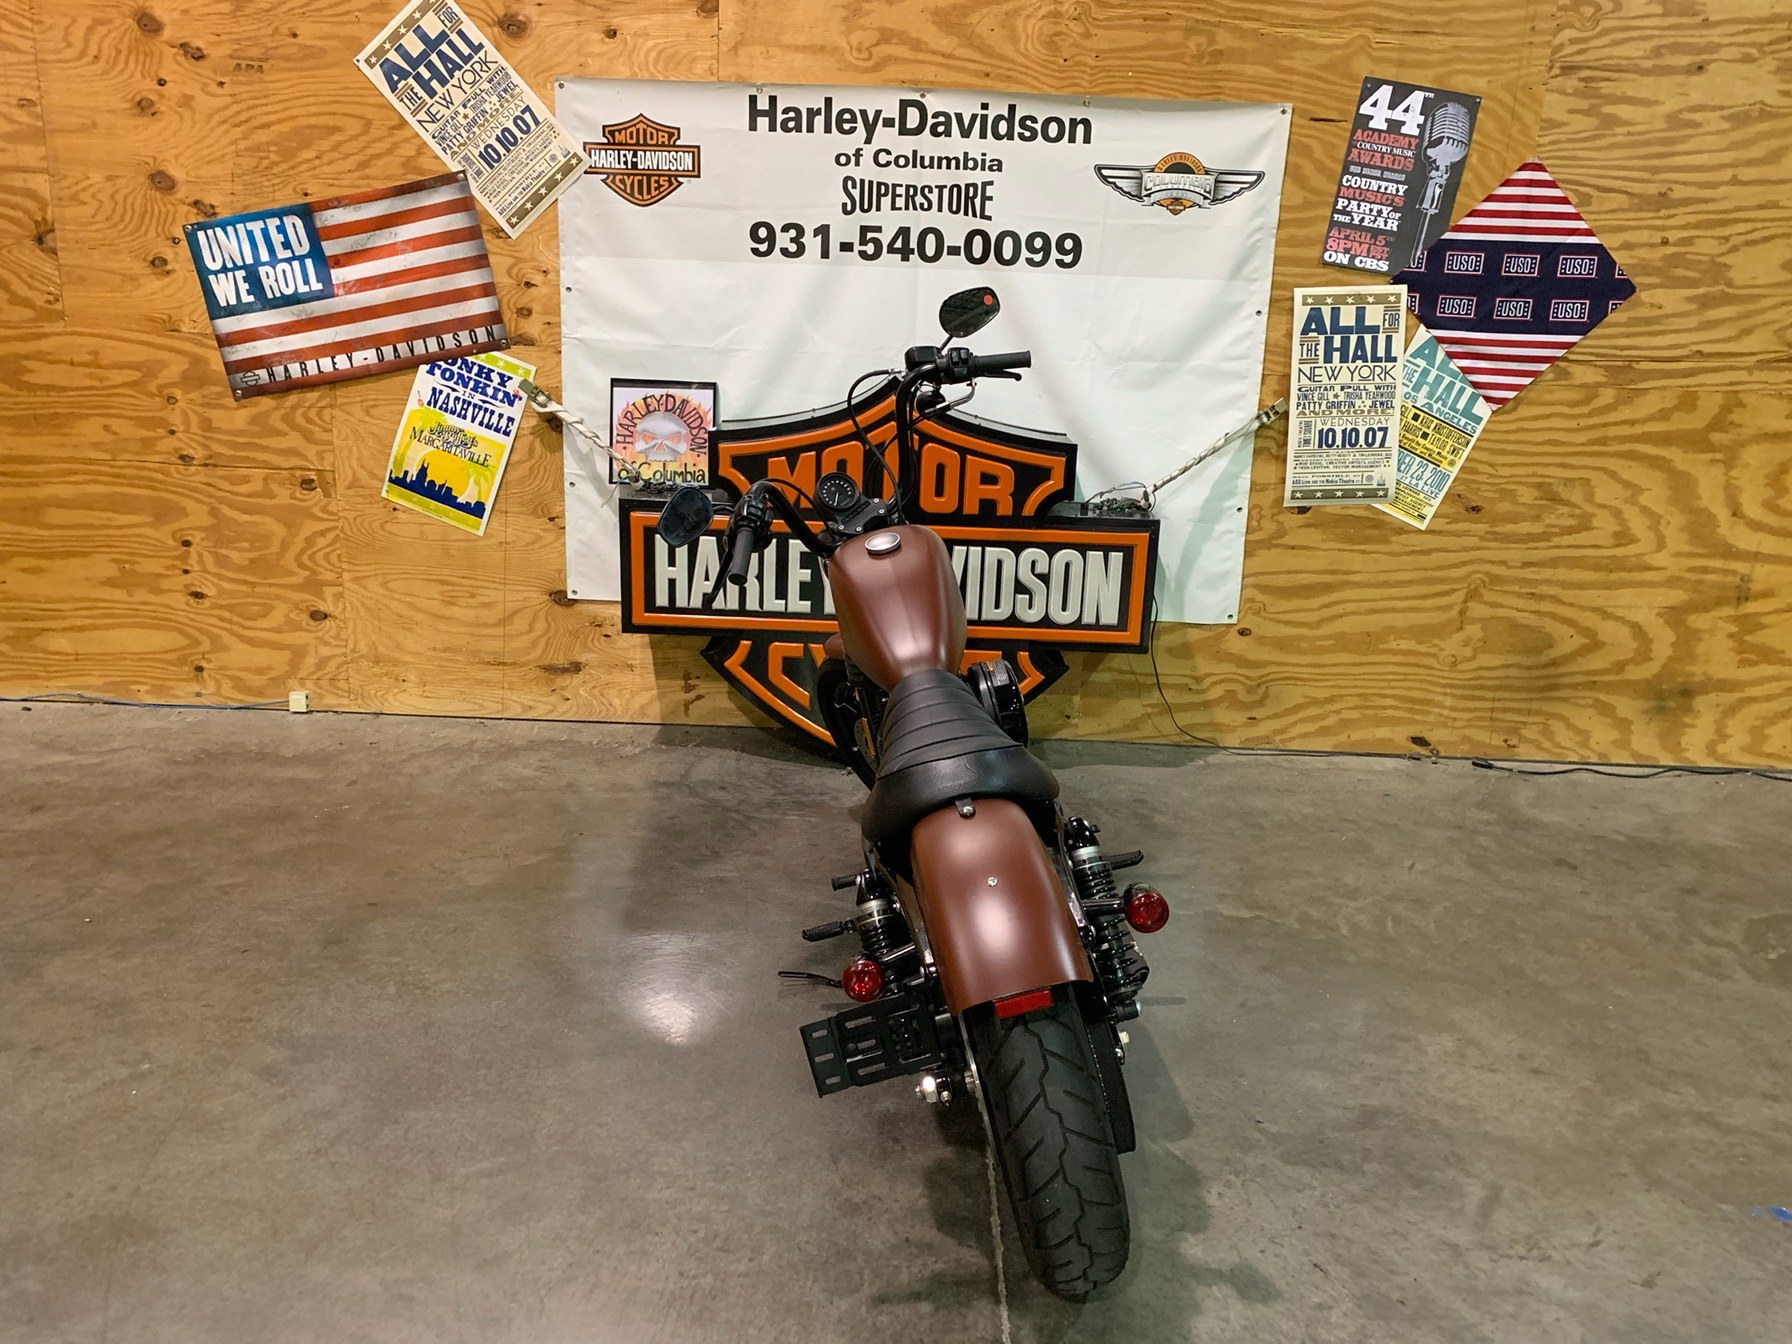 2017 Harley-Davidson XL883N in Columbia, Tennessee - Photo 7